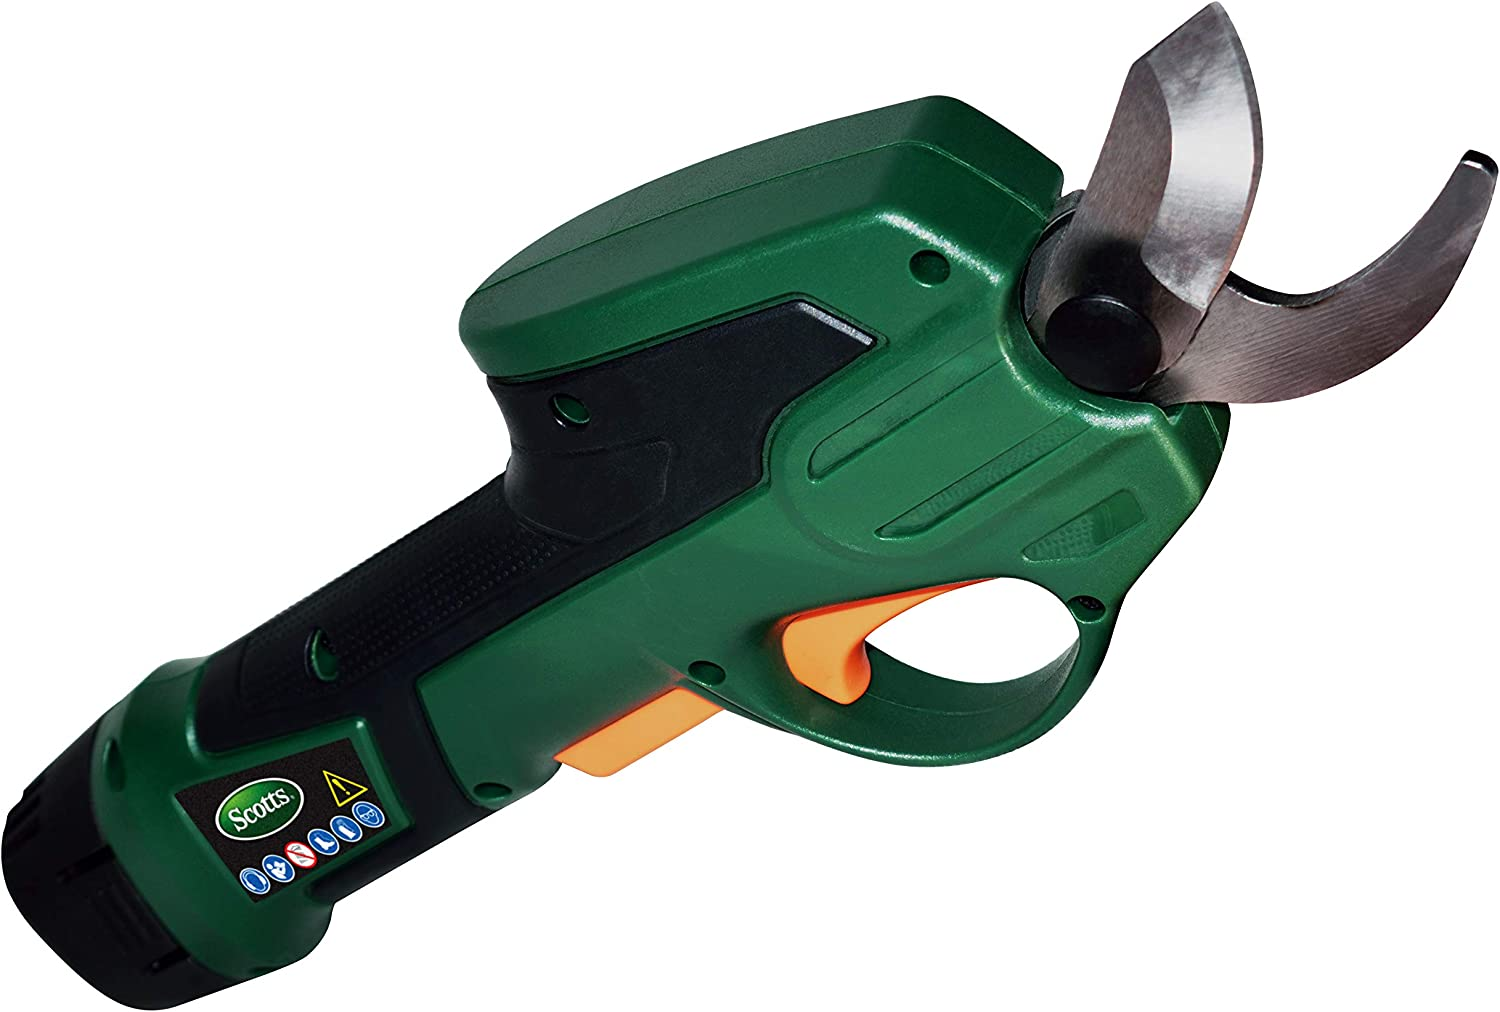 Scotts Outdoor Power Tools PR17215S 7.2-Volt Lithium-Ion Cordless Rechargeable Power Pruner, Green